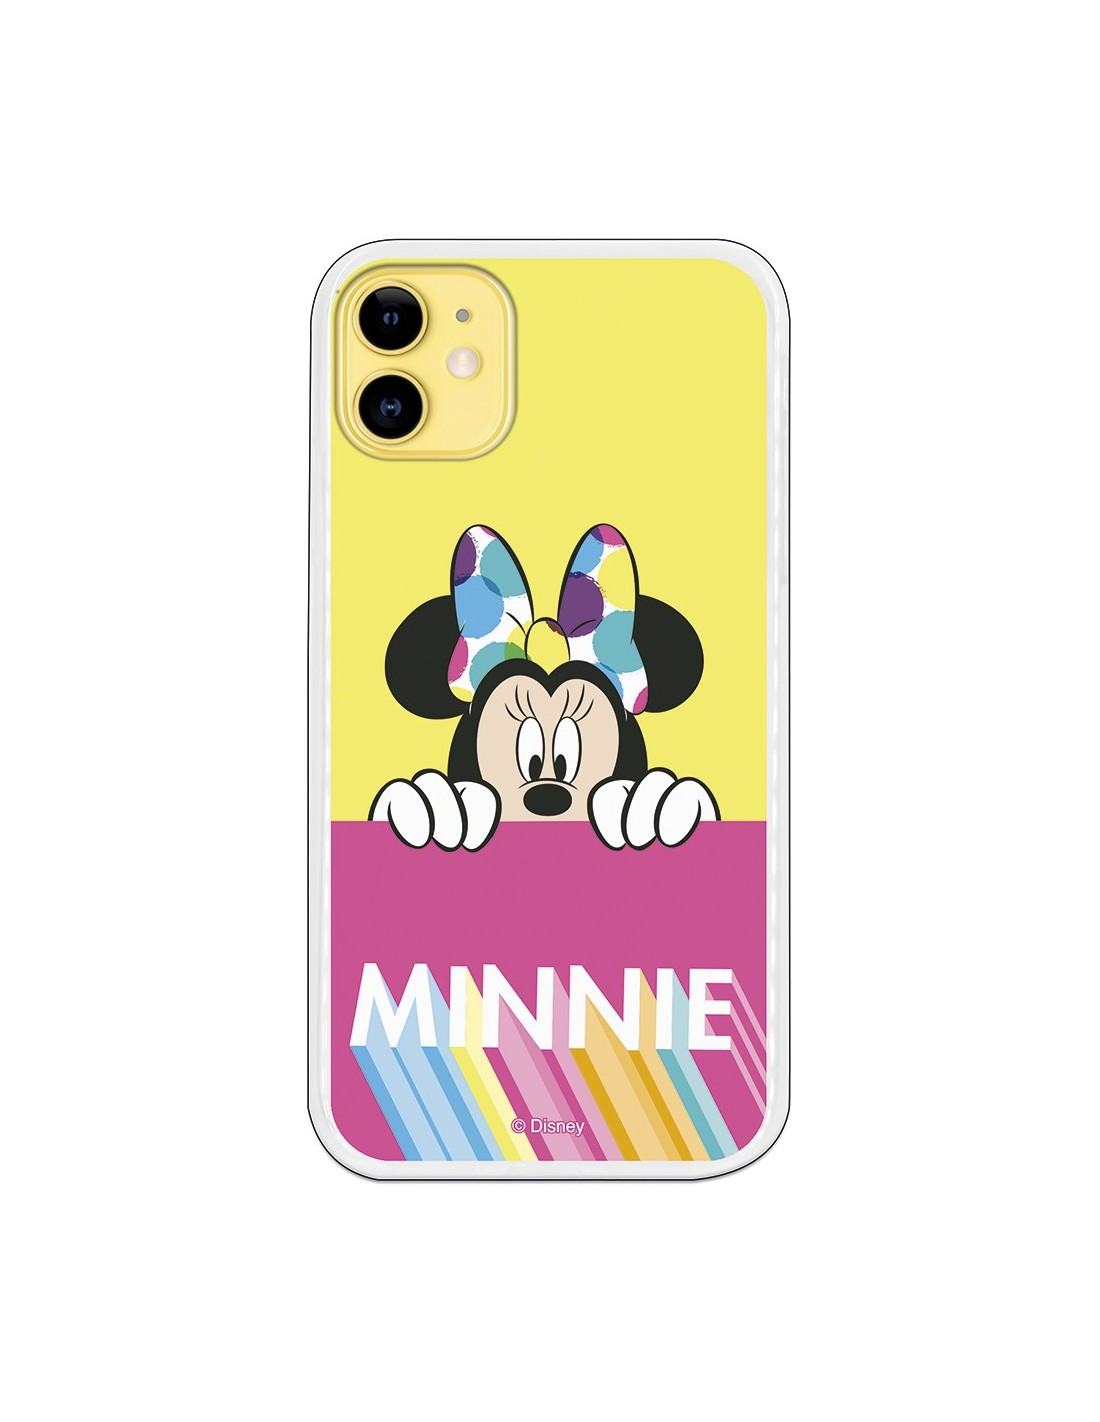 Disney Iphone 11 Case | Disney Minnie Pink Yellow Official IPhone 11 Case Disney Classics